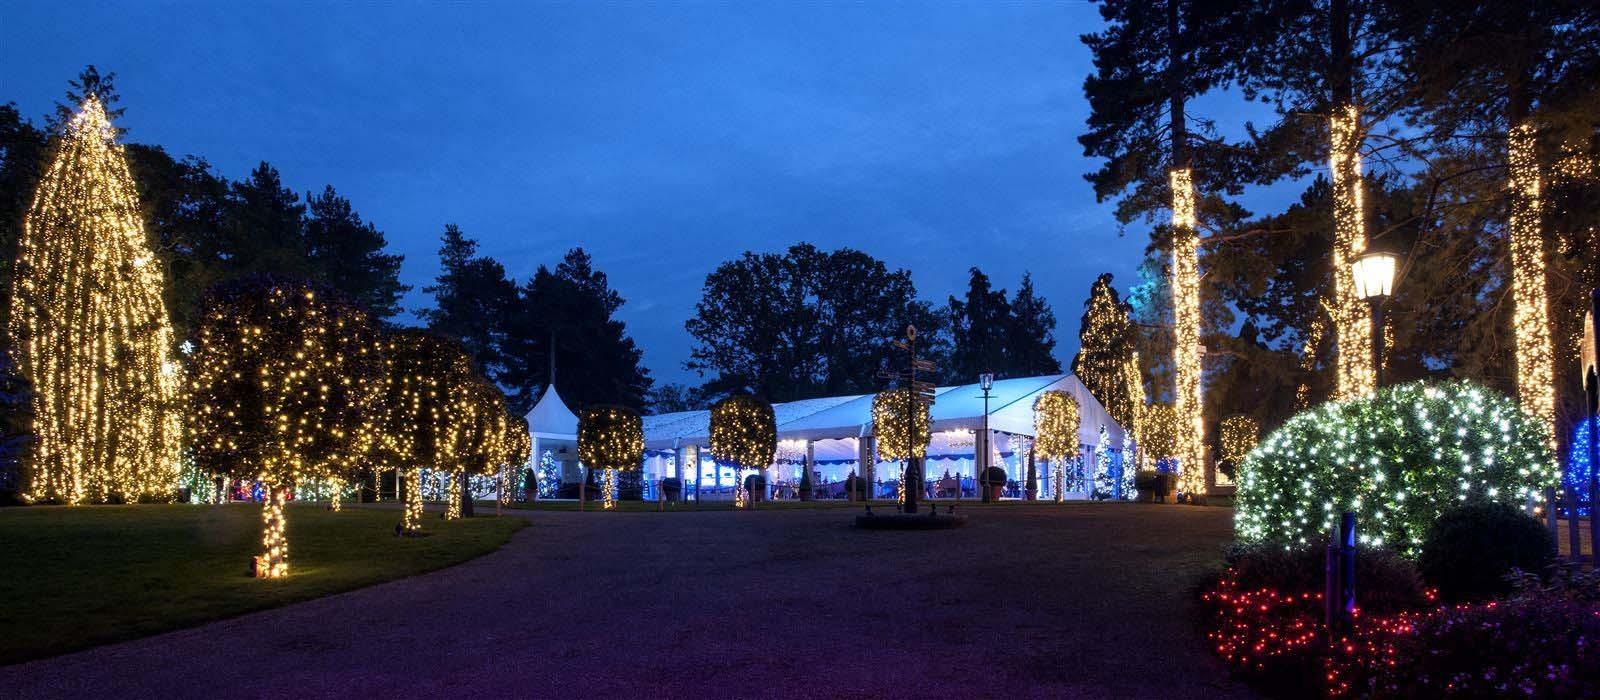 Garden Pavilion at night during Christmas